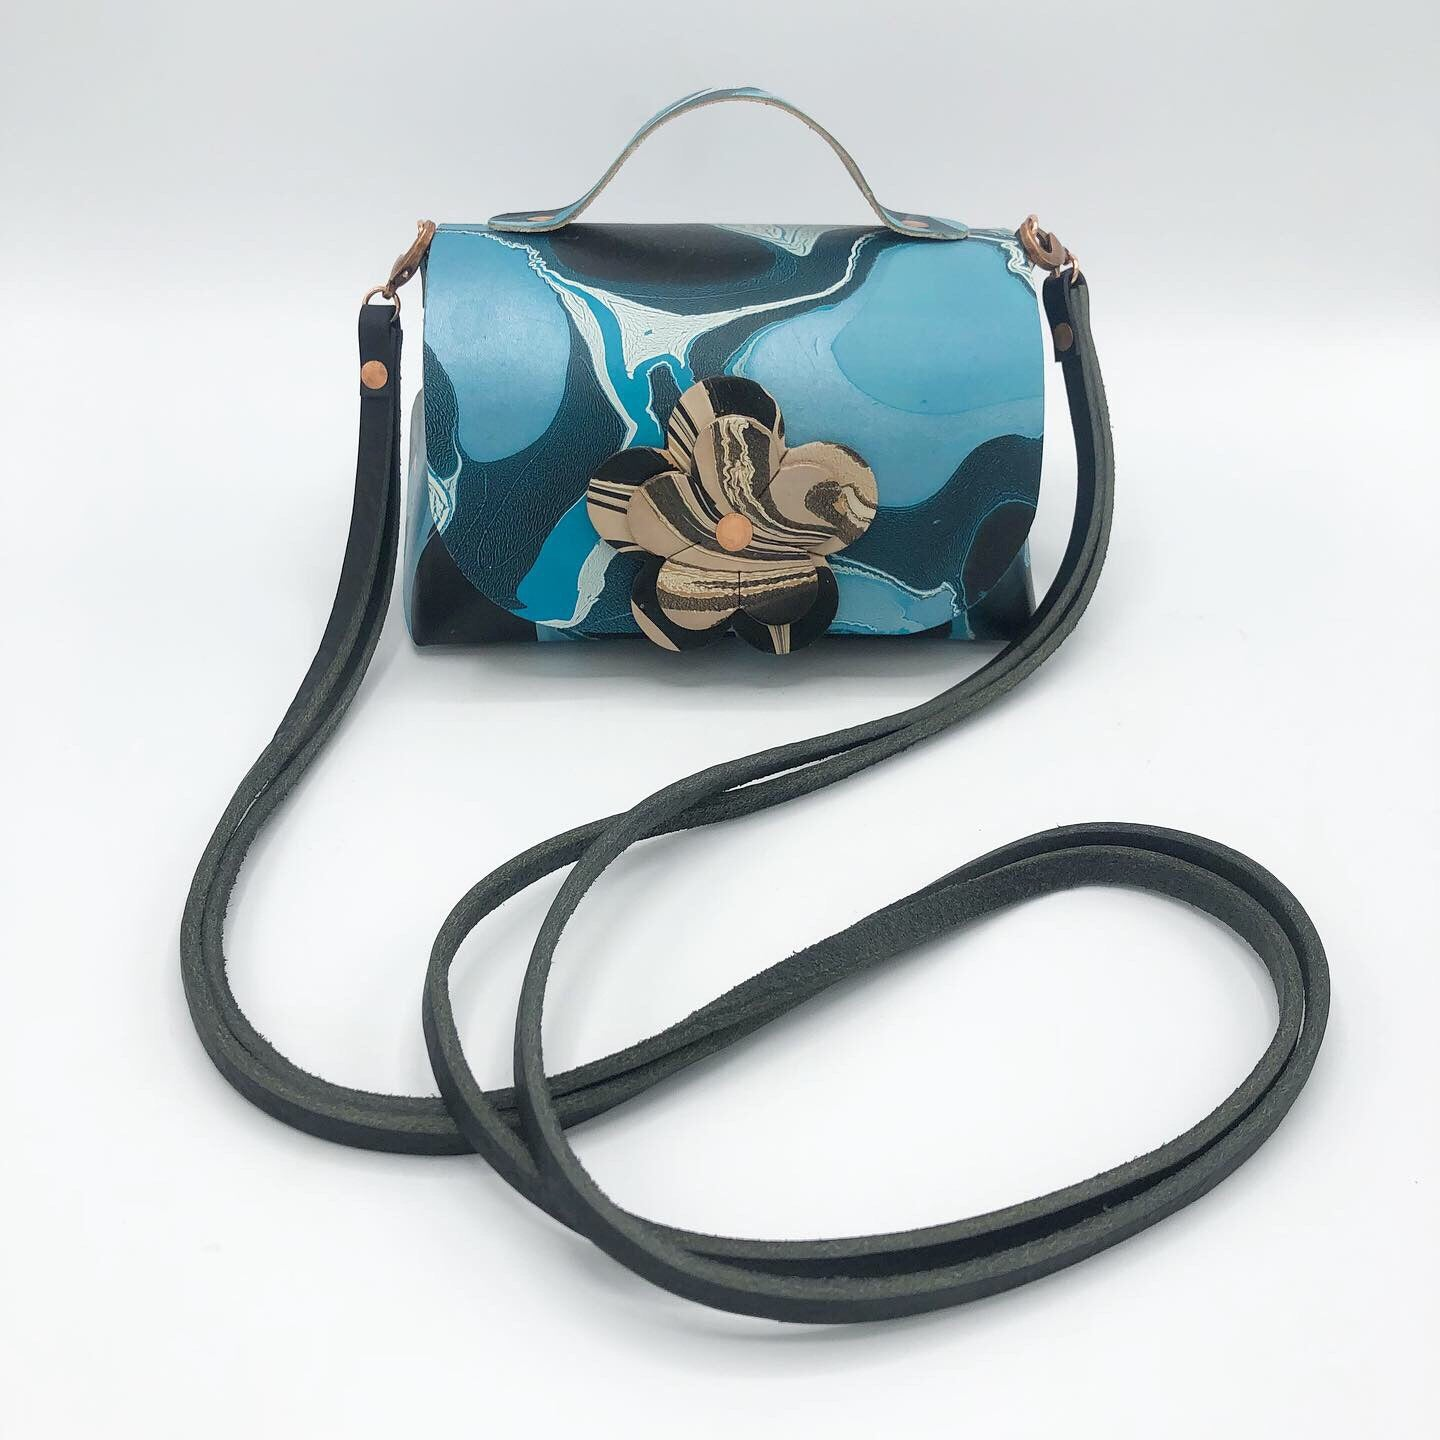 Turquoise Frost Mini Satchel - No One Alike